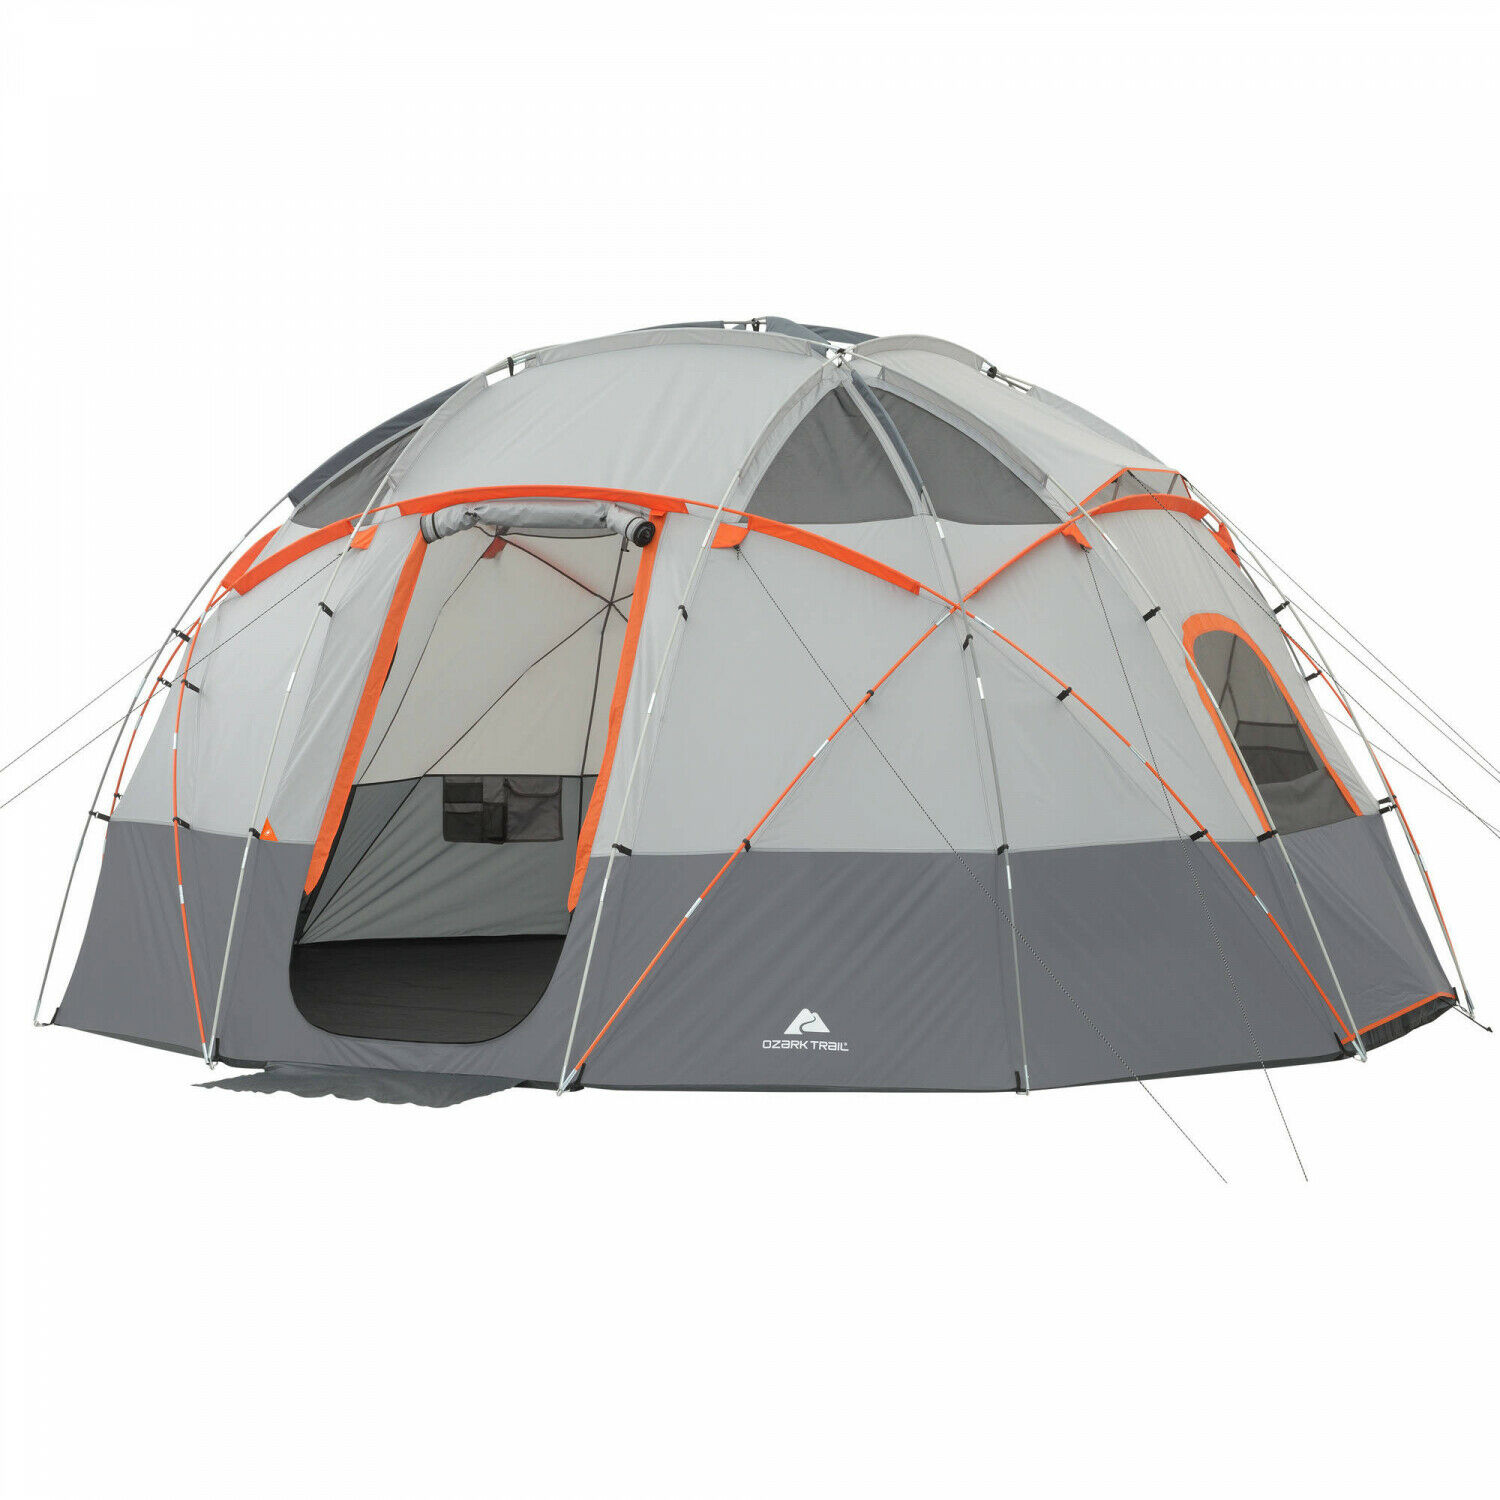 All Season 16 x 16 Sphere Cabin Tent Sleeps 12 Person Outdoor Camping Shelter